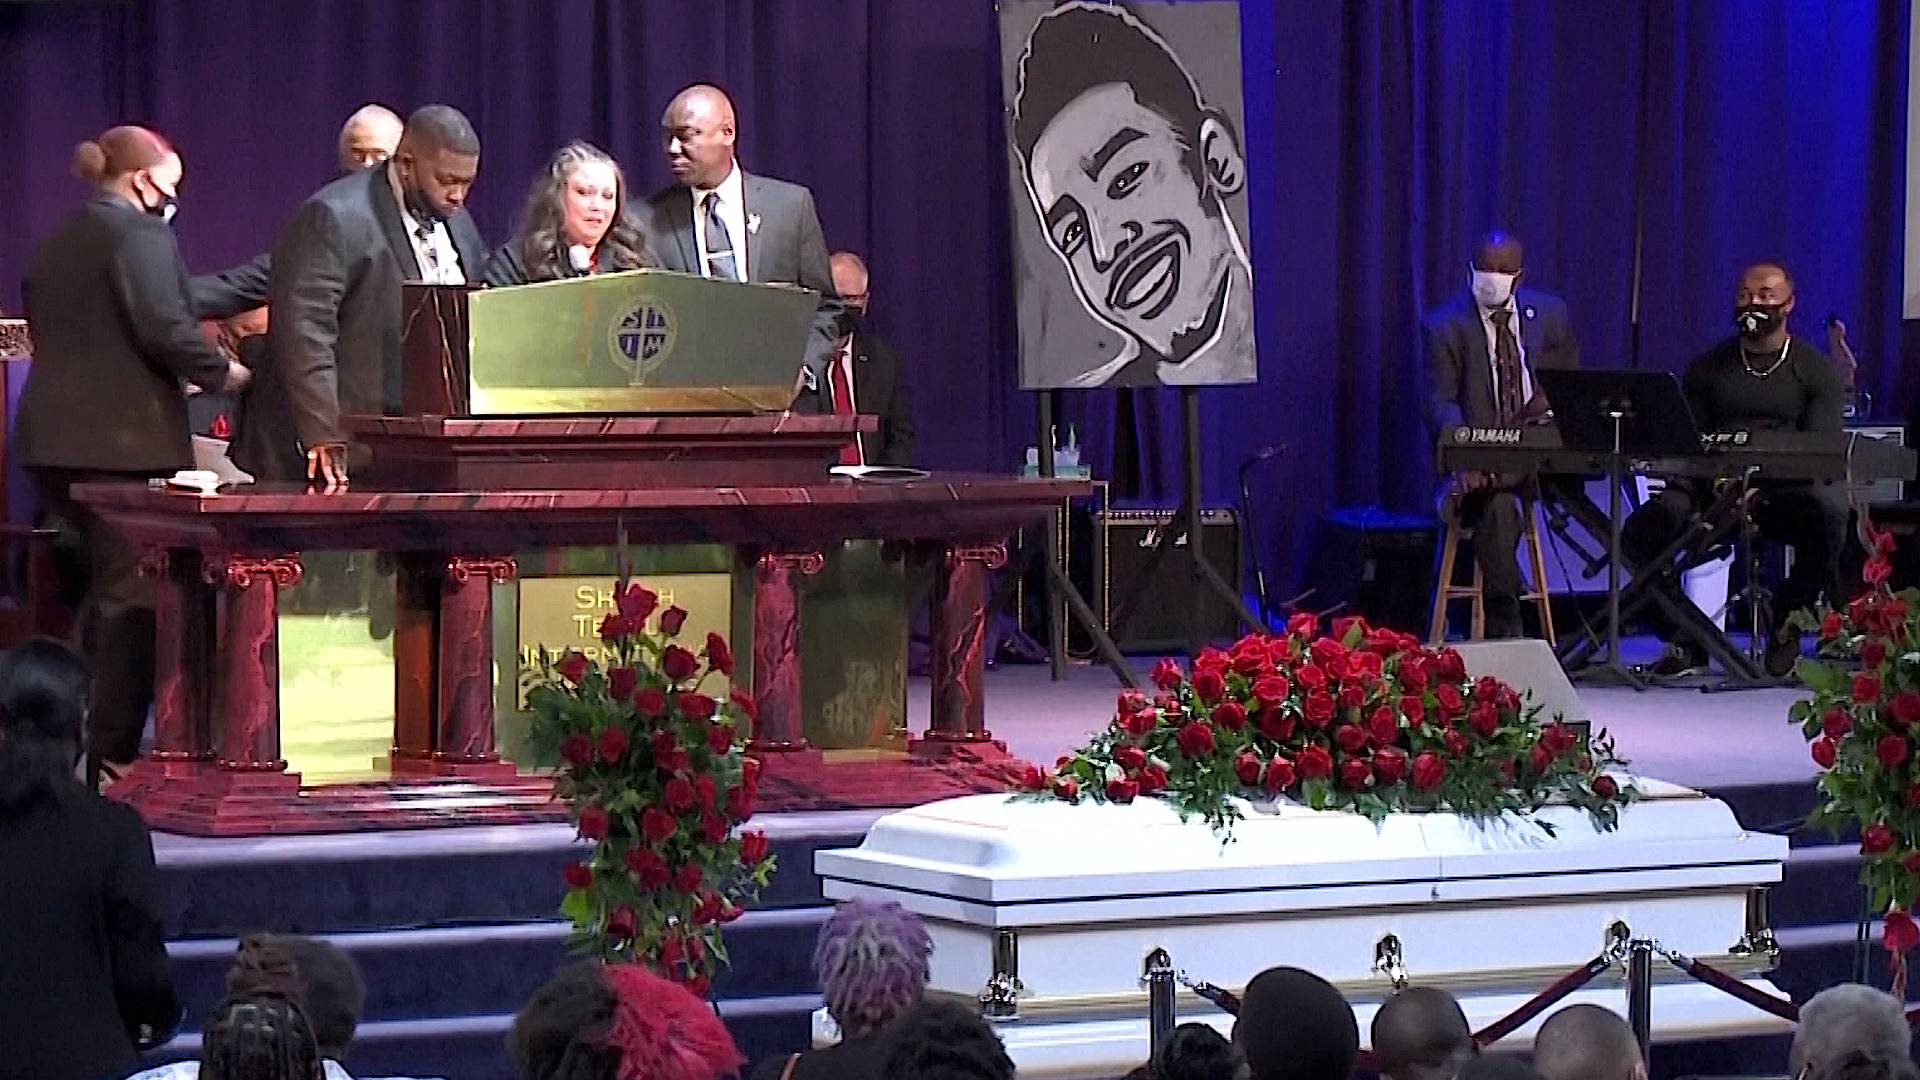 """Read more about the article """"He's Going to Be So Missed"""": Funeral Held for Police Shooting Victim Daunte Wright in Minneapolis"""